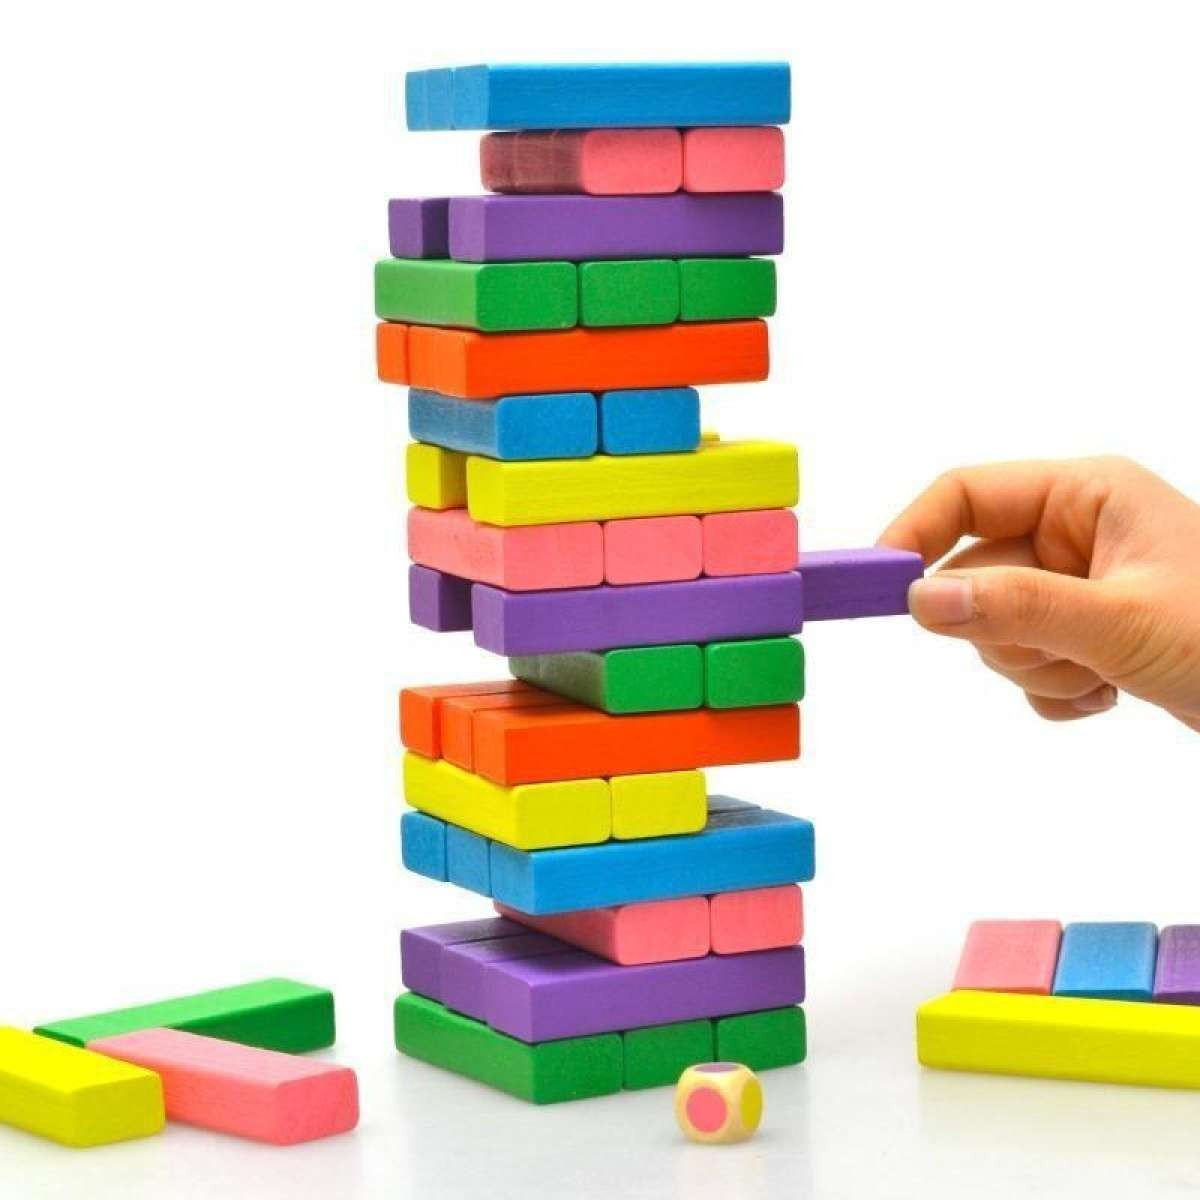 Jenga Wooden Kids Game Small Size 52 Blocks with 2 Dice Stacking Tumbling Tower Multicolor